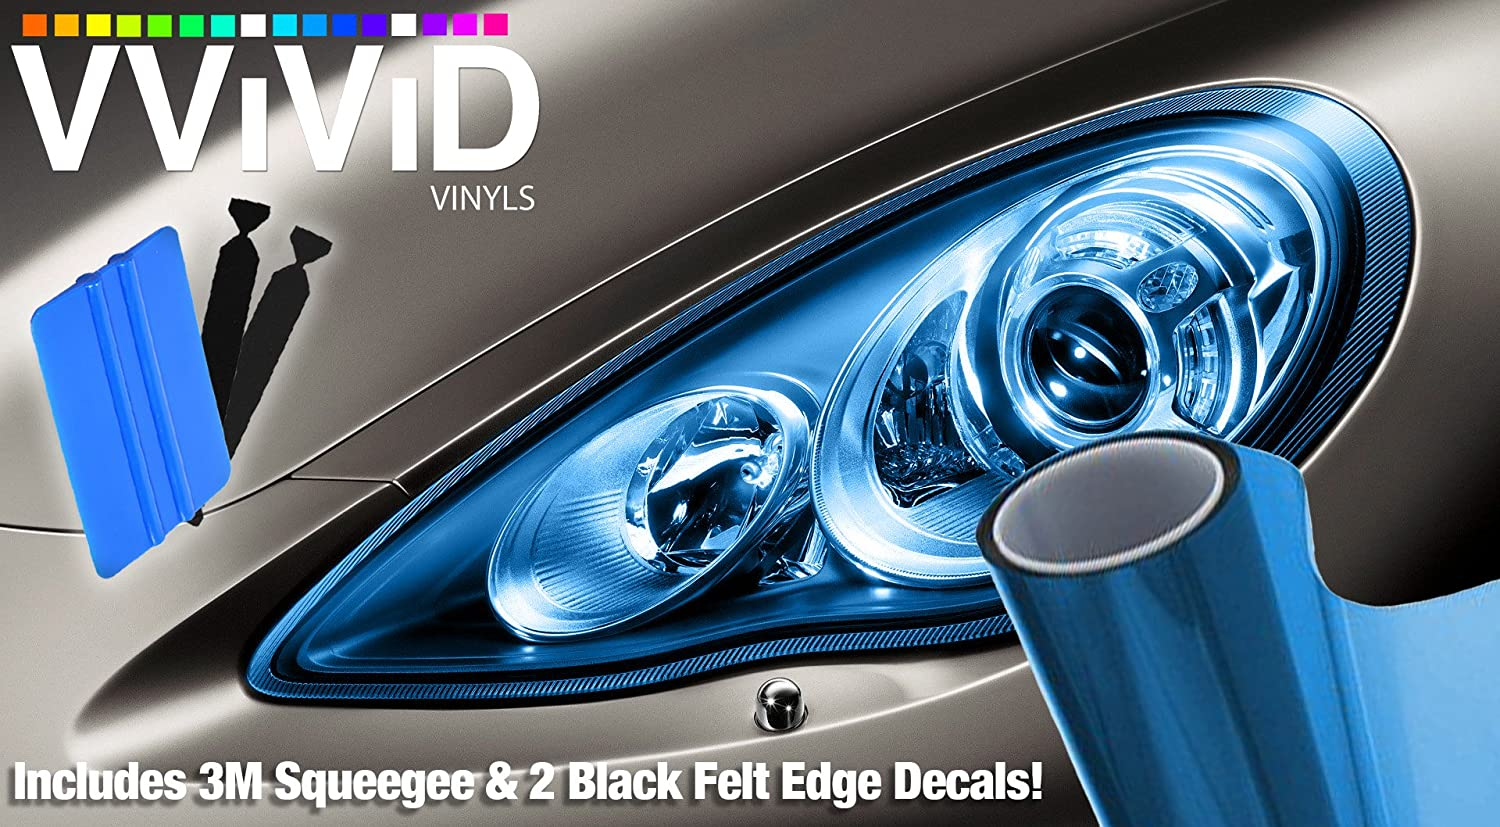 VViViD Extra-Wide Headlight Taillight Vinyl Tint Wrap 16 x 48 Roll Including Detailer Squeegee /& 2X Black Felt Edge Decals Dark Black